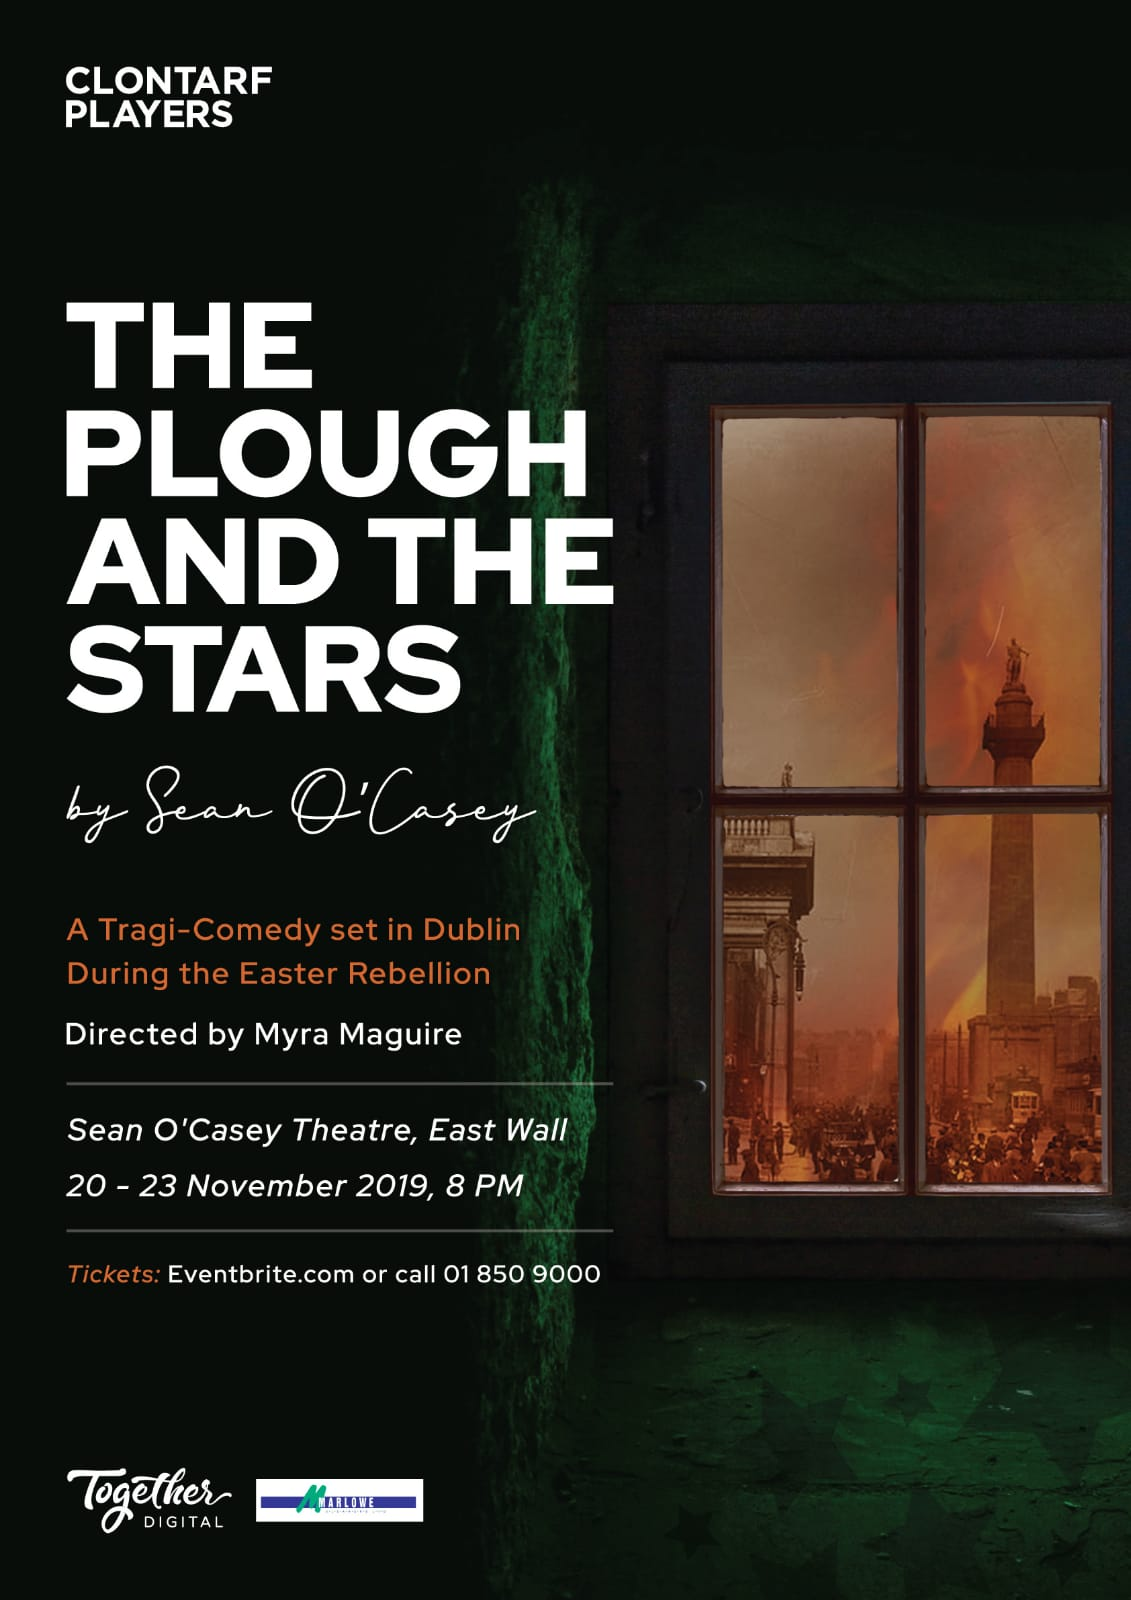 The Plough and the Stars by Sean O'Casey